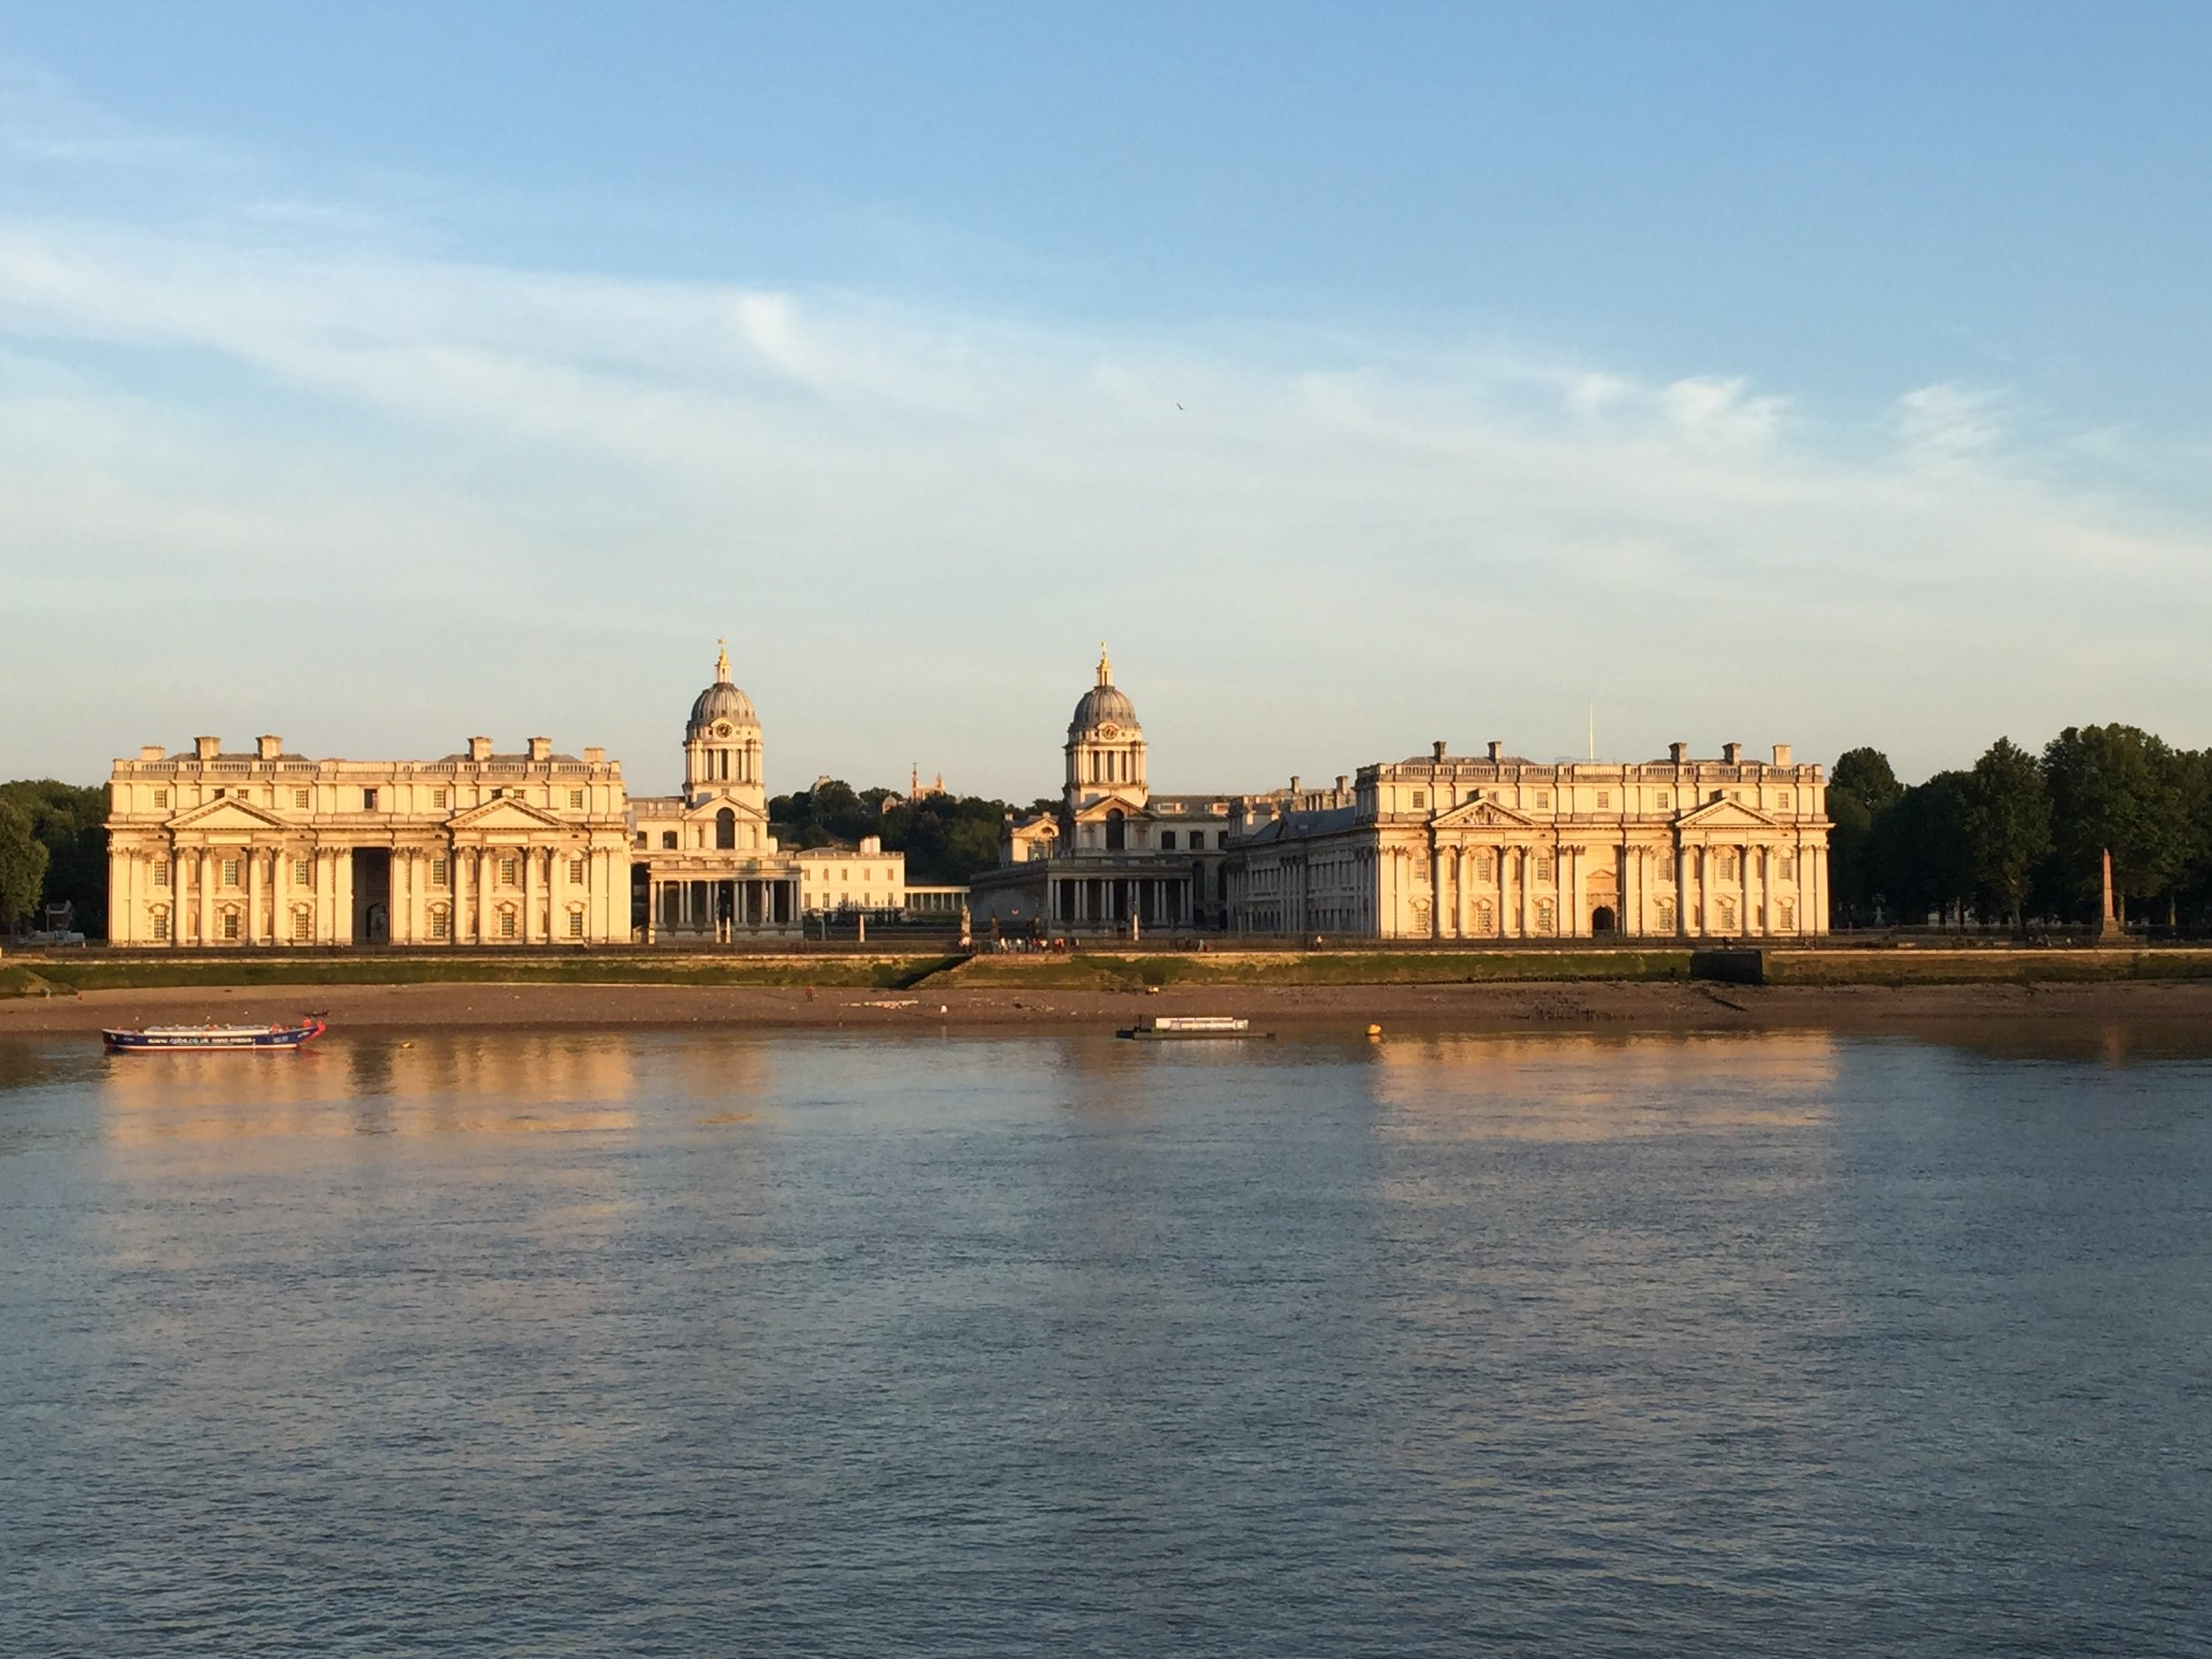 Greenwich Hospital from the Isle of Dogs